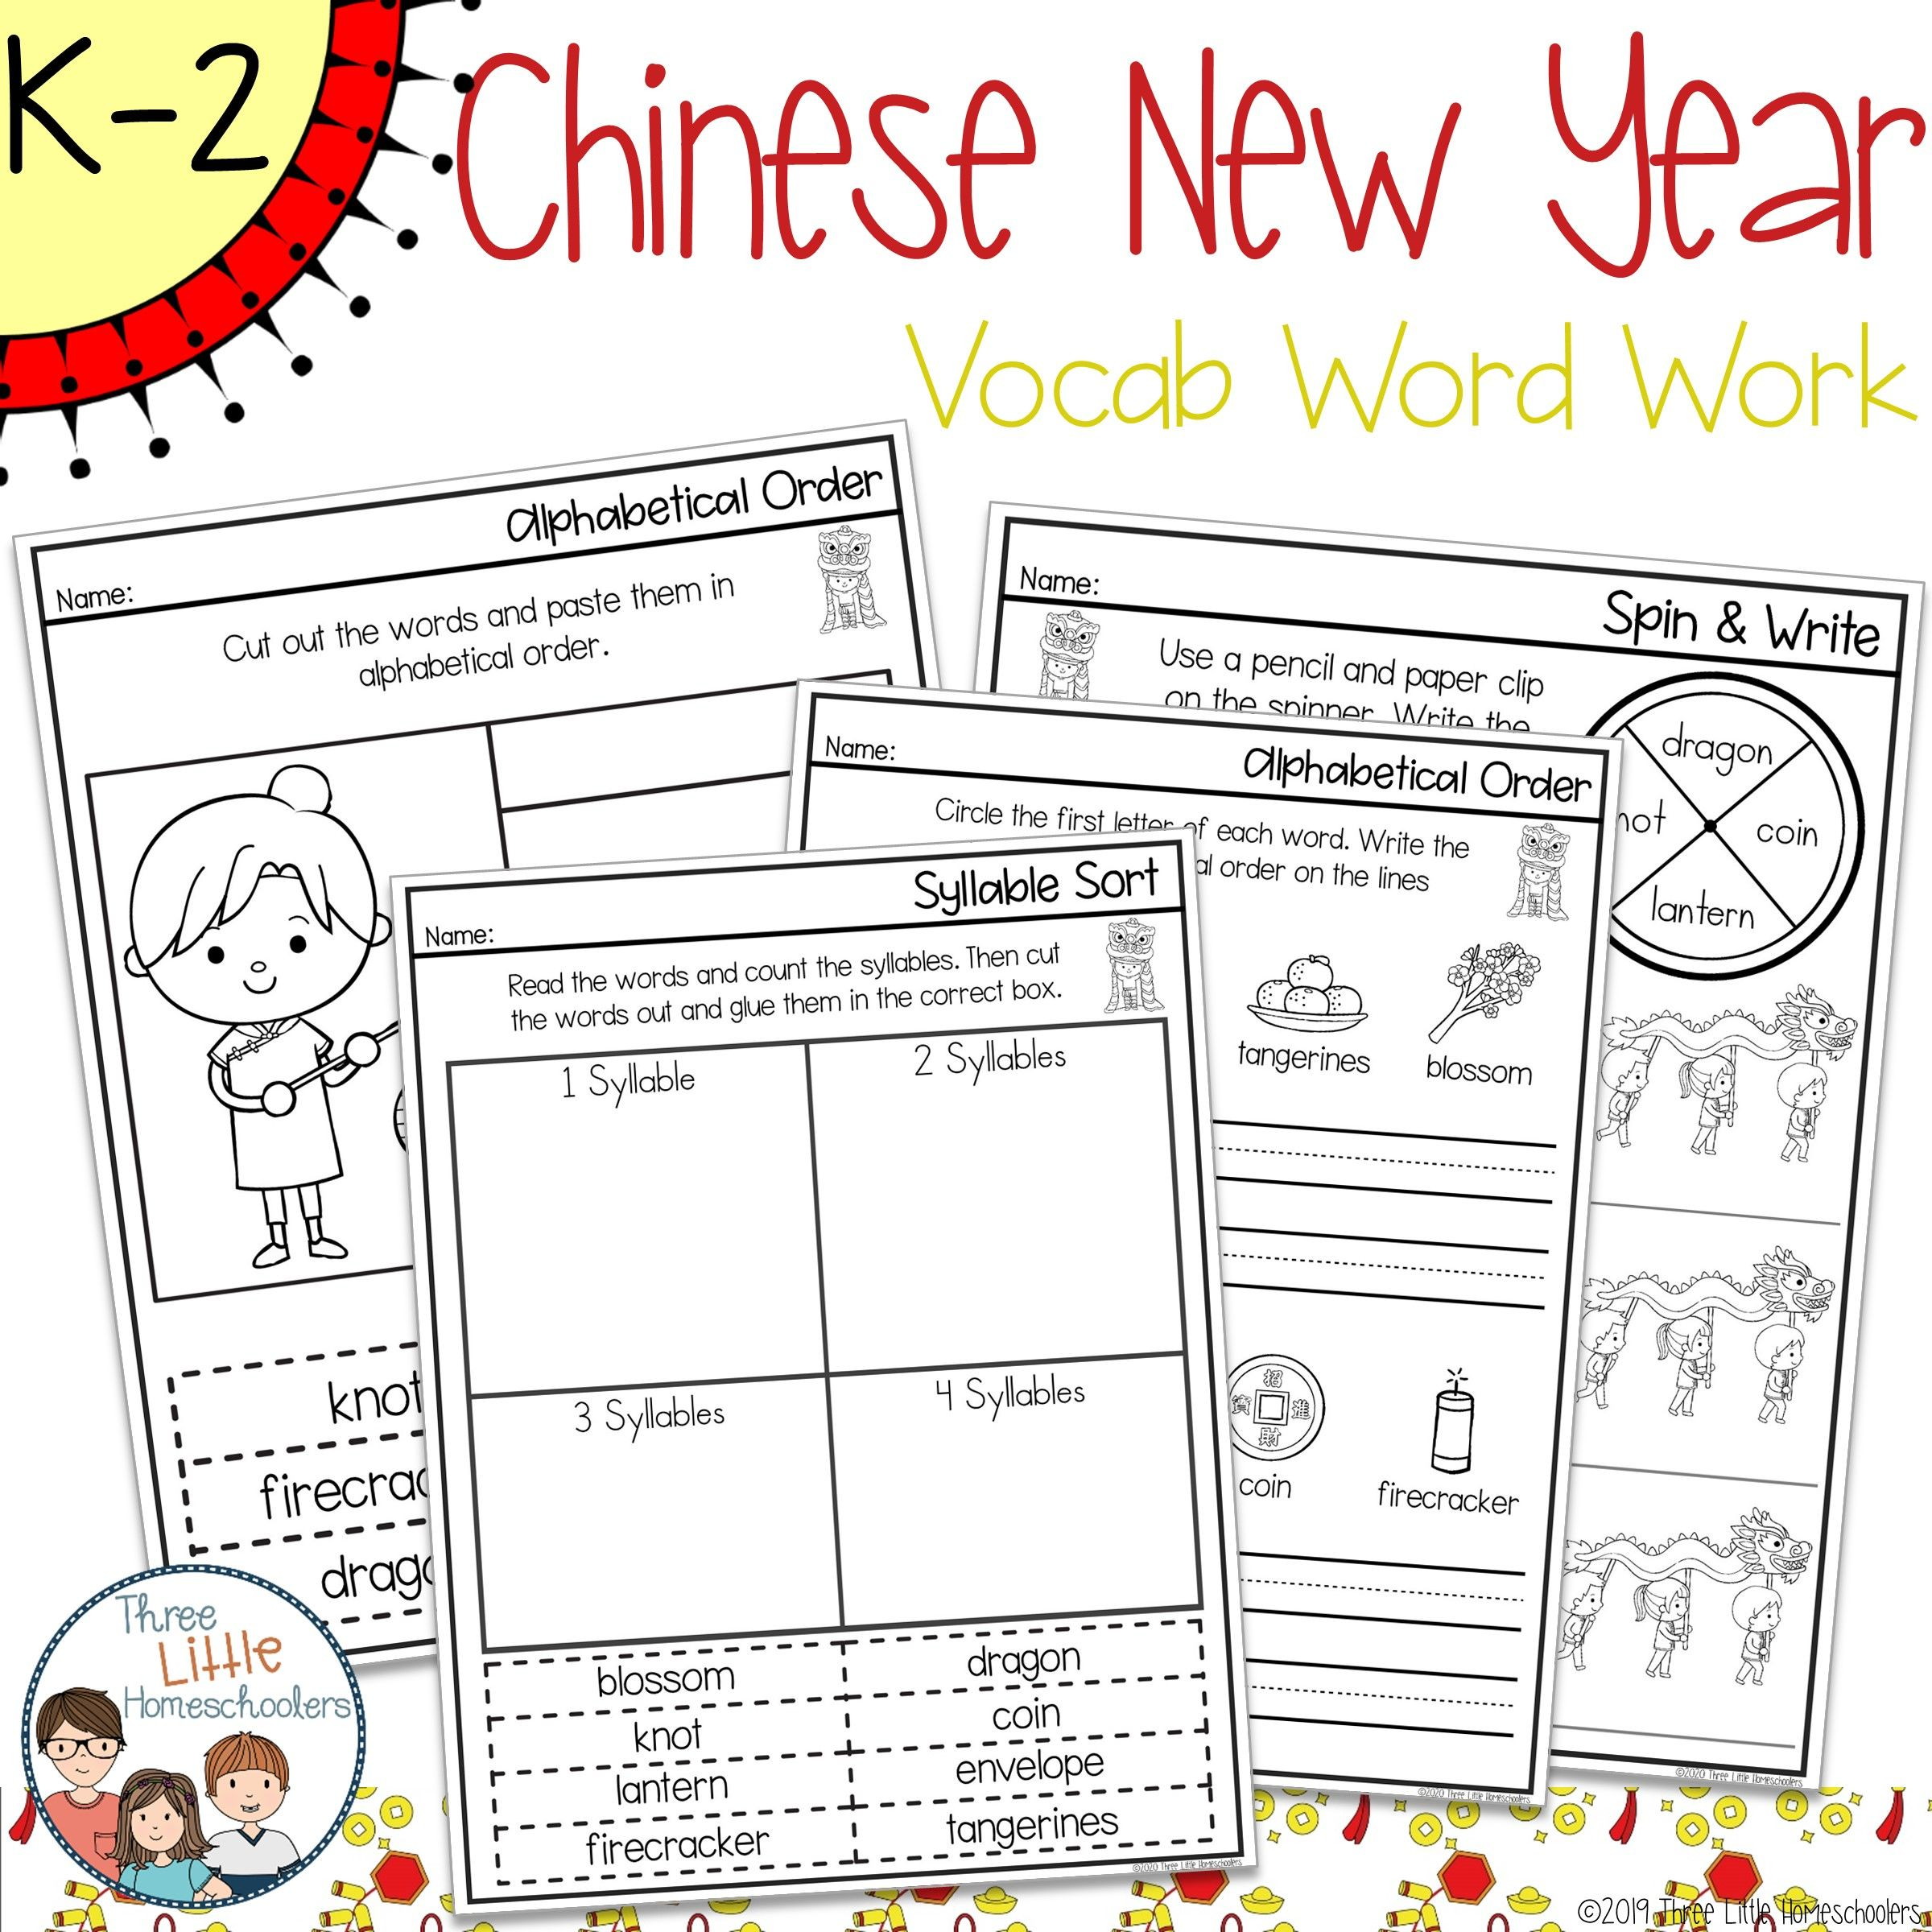 Chinese New Year Spelling Word Work Pack